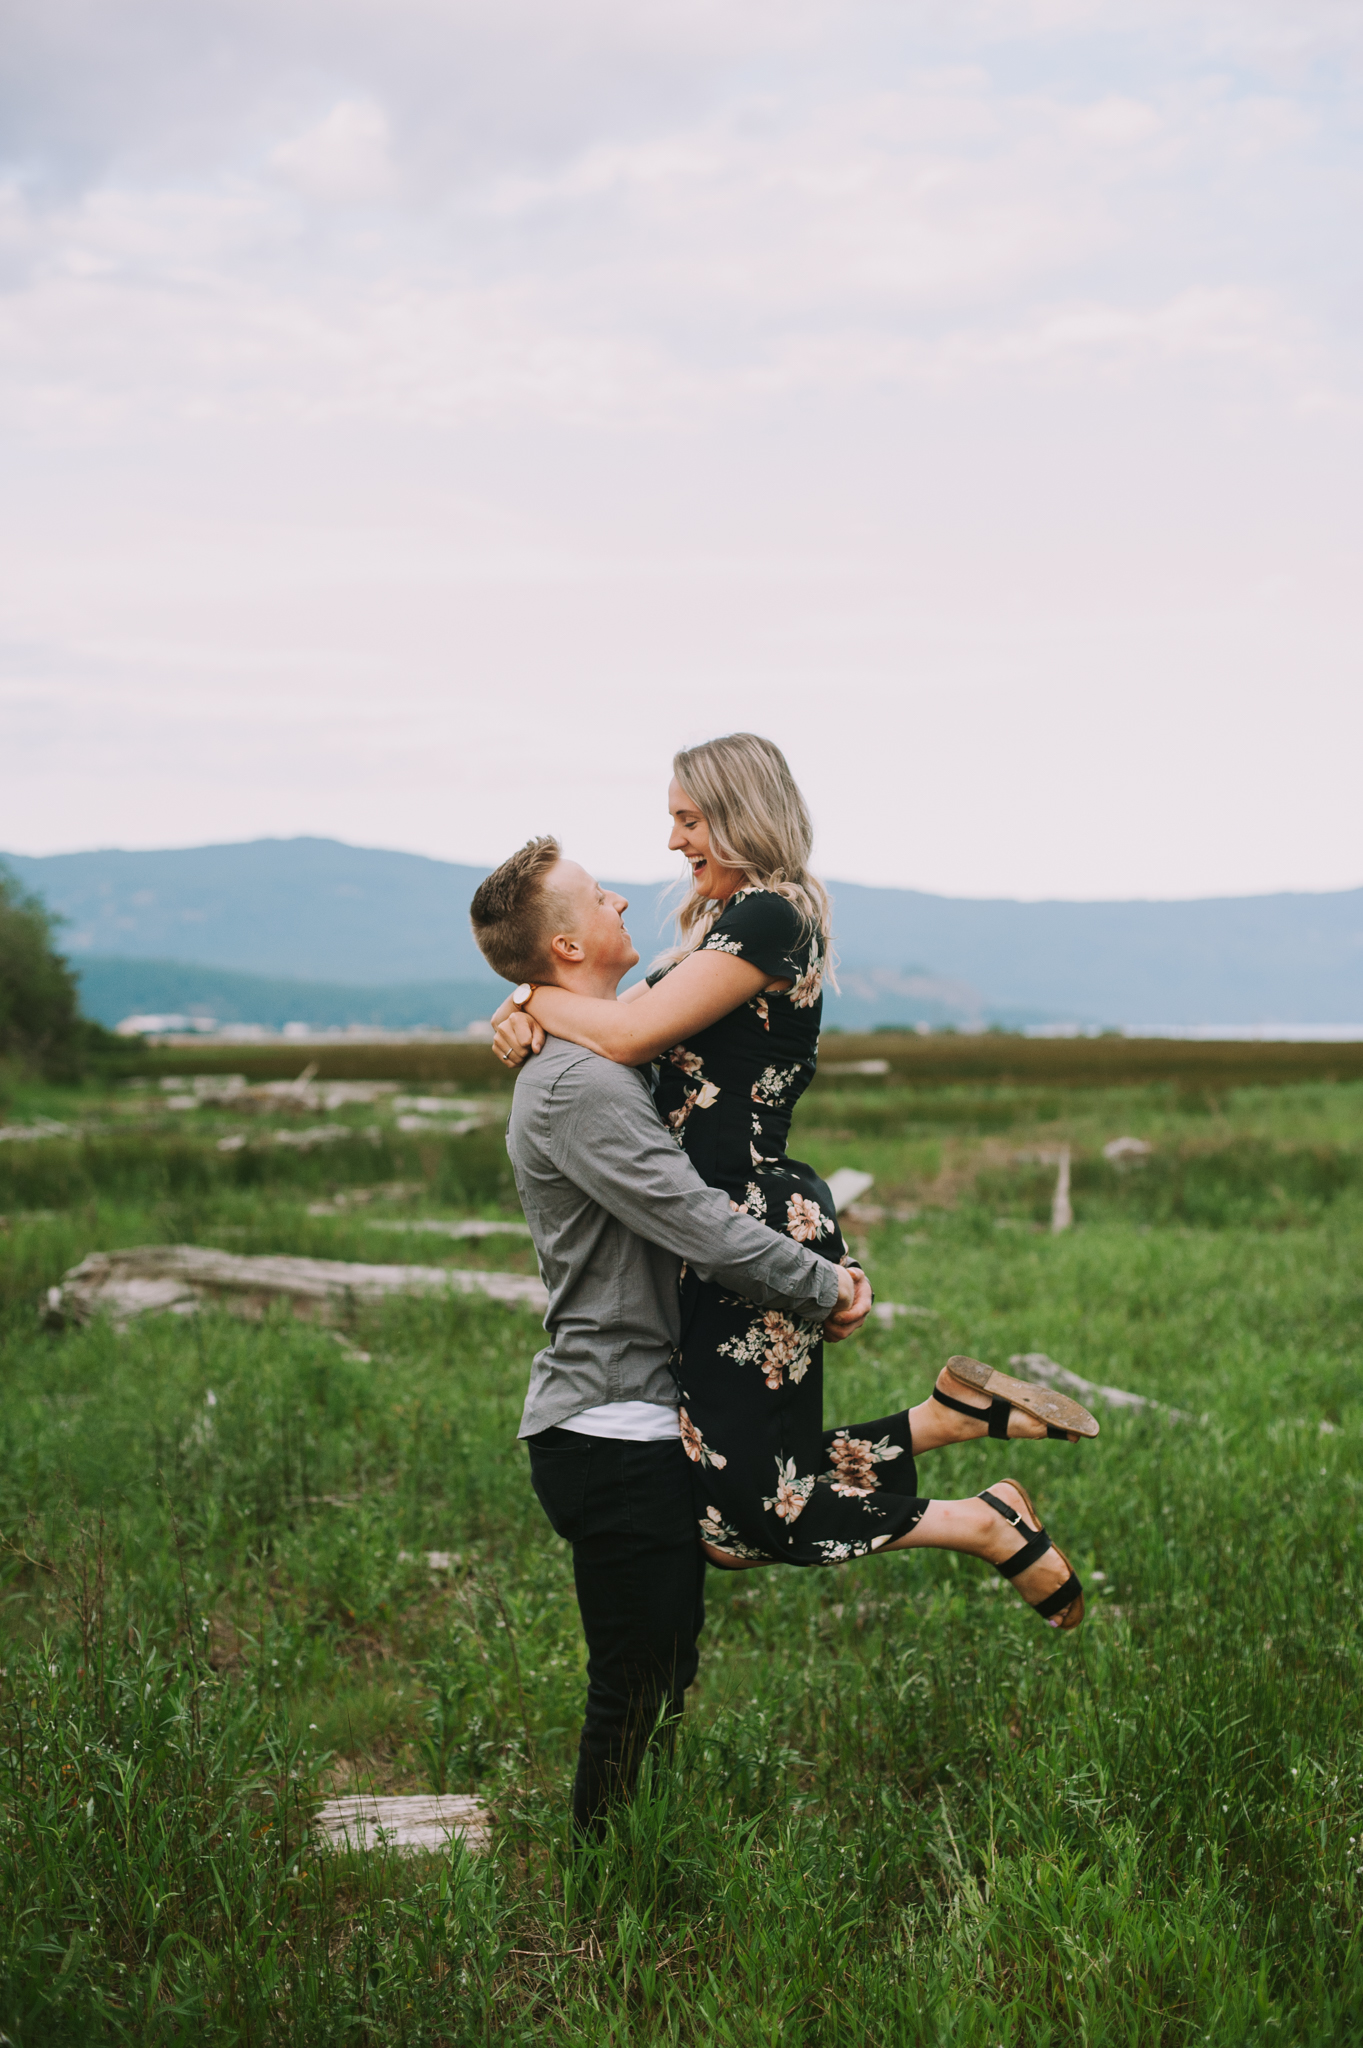 Leah+Rylan May2019_12.jpg